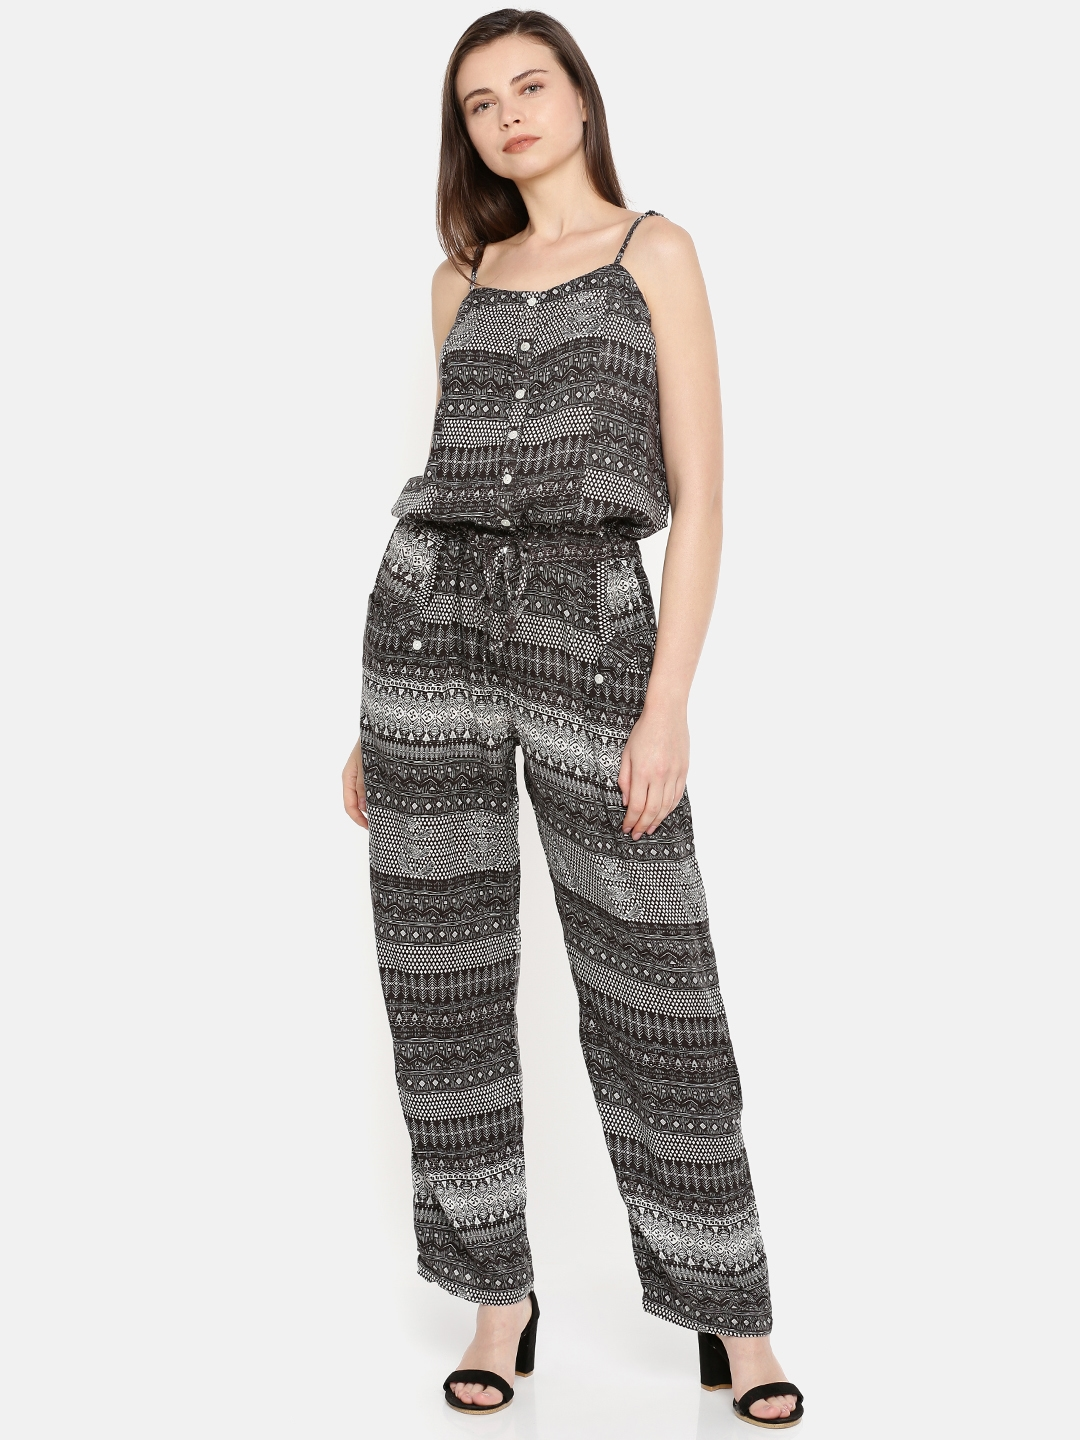 7f52196fa73 Buy BIBA Black   White Printed Jumpsuit - Jumpsuit for Women 1384612 ...